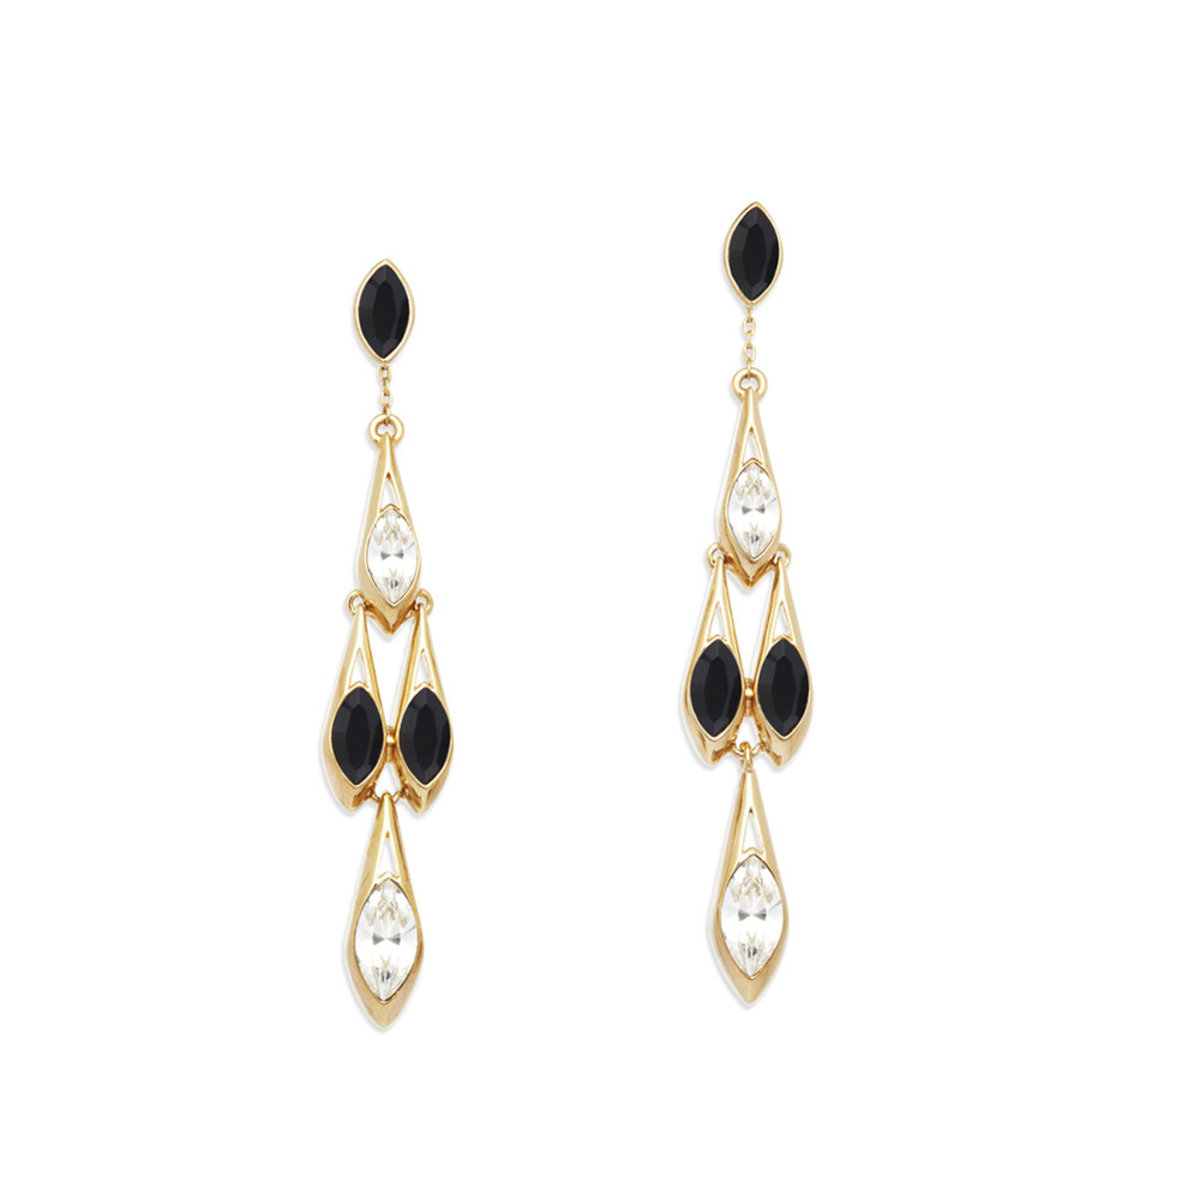 Ailes: gold plating, Swarovski jet/clear  crystal pierced earrings (can be worn in 2 ways)